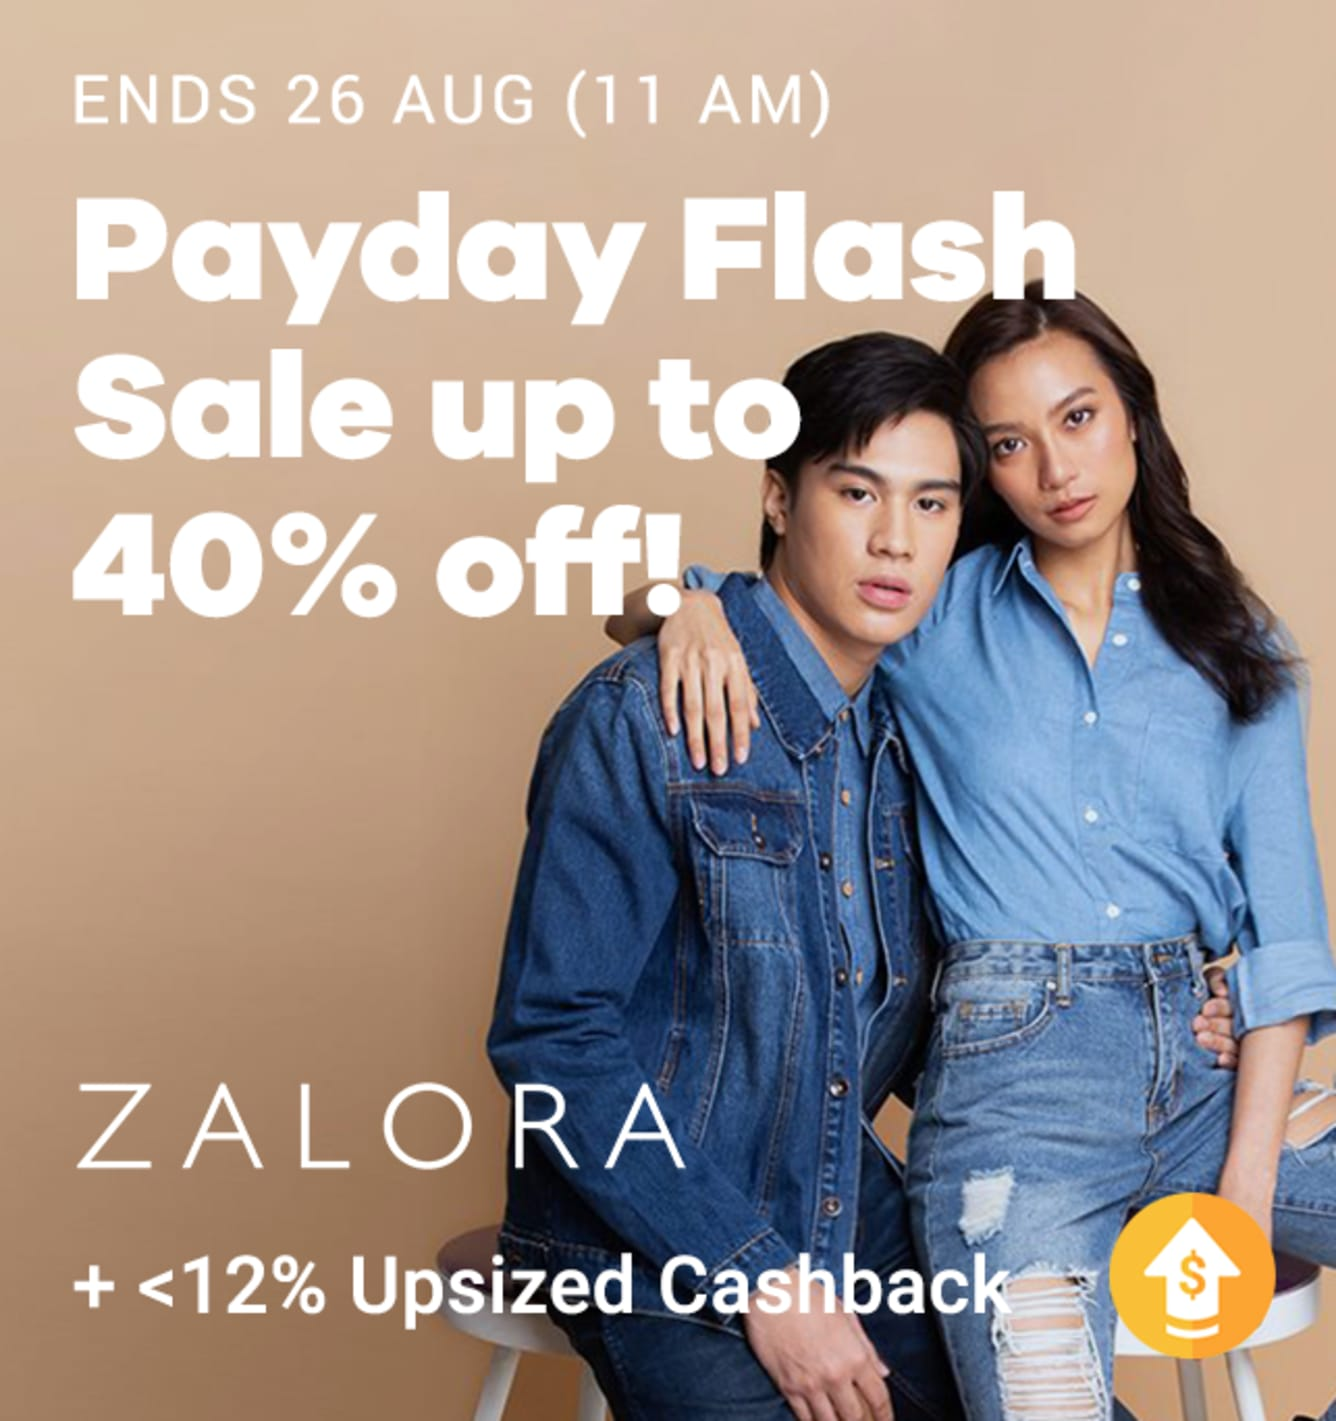 ZALORA Payday Flash Sale + Up to 12% Upsized Cashback